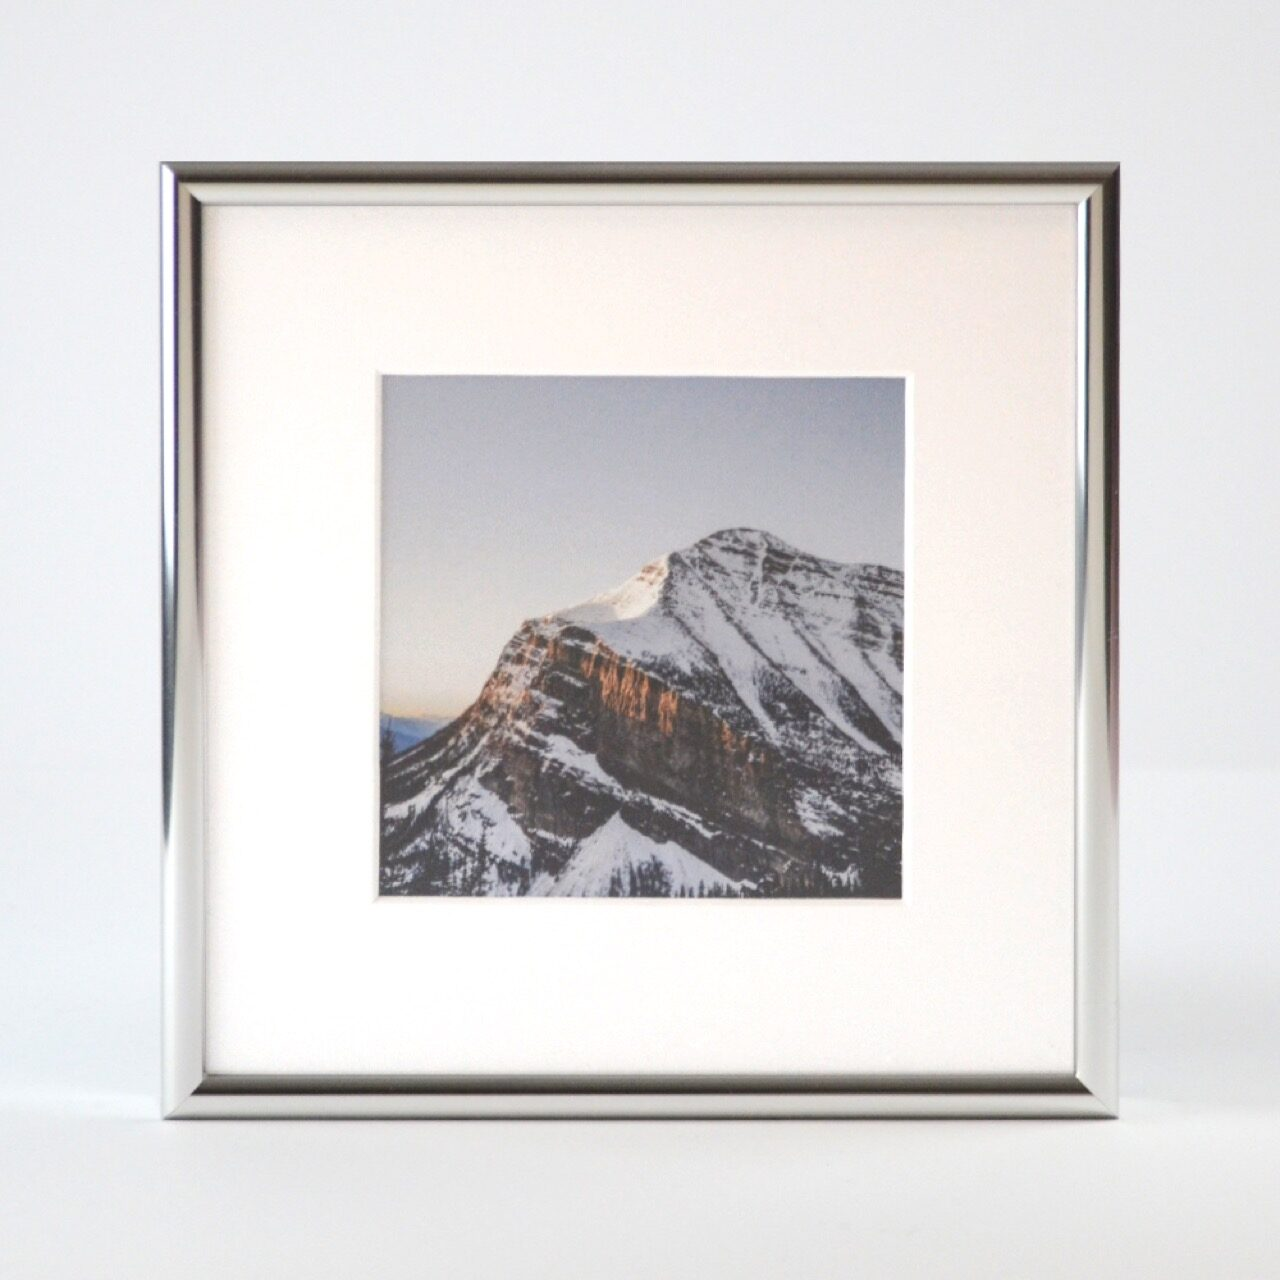 Hanover frame style in gloss silver